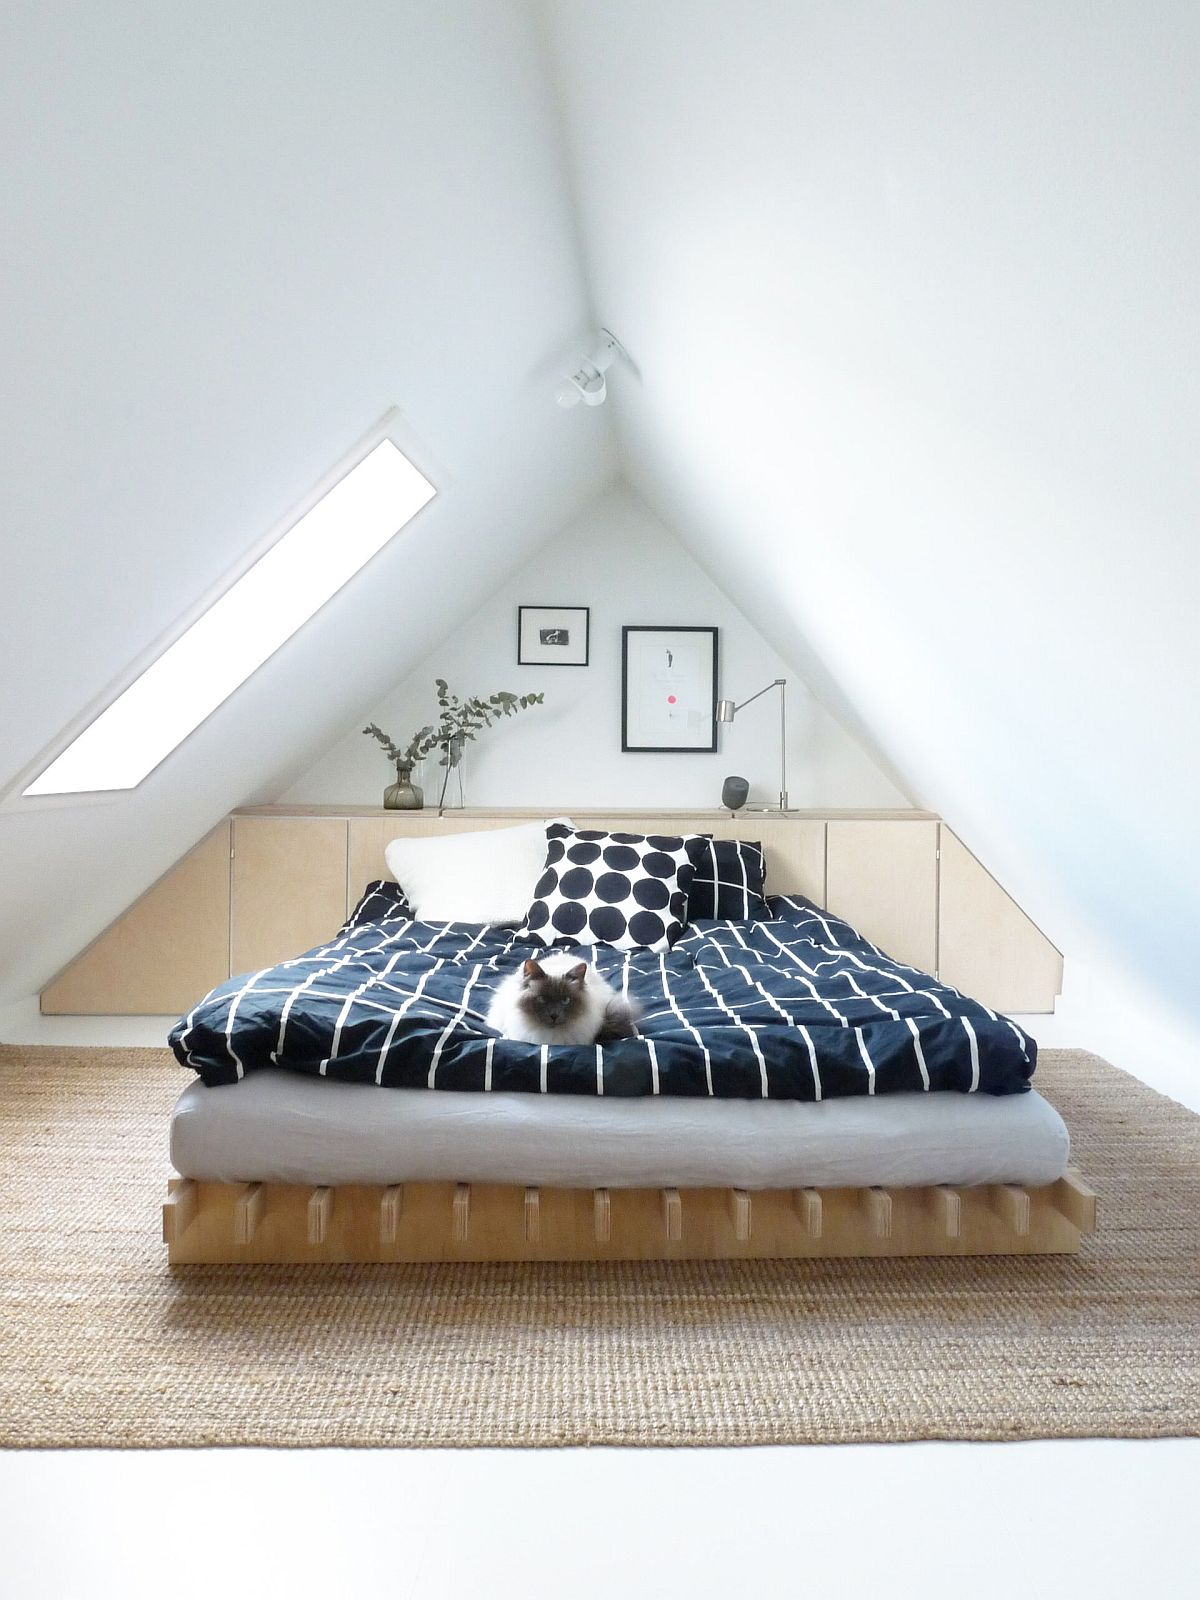 Colorful-bedding-offers-an-easy-way-to-usher-color-into-the-small-white-bedroom-96492